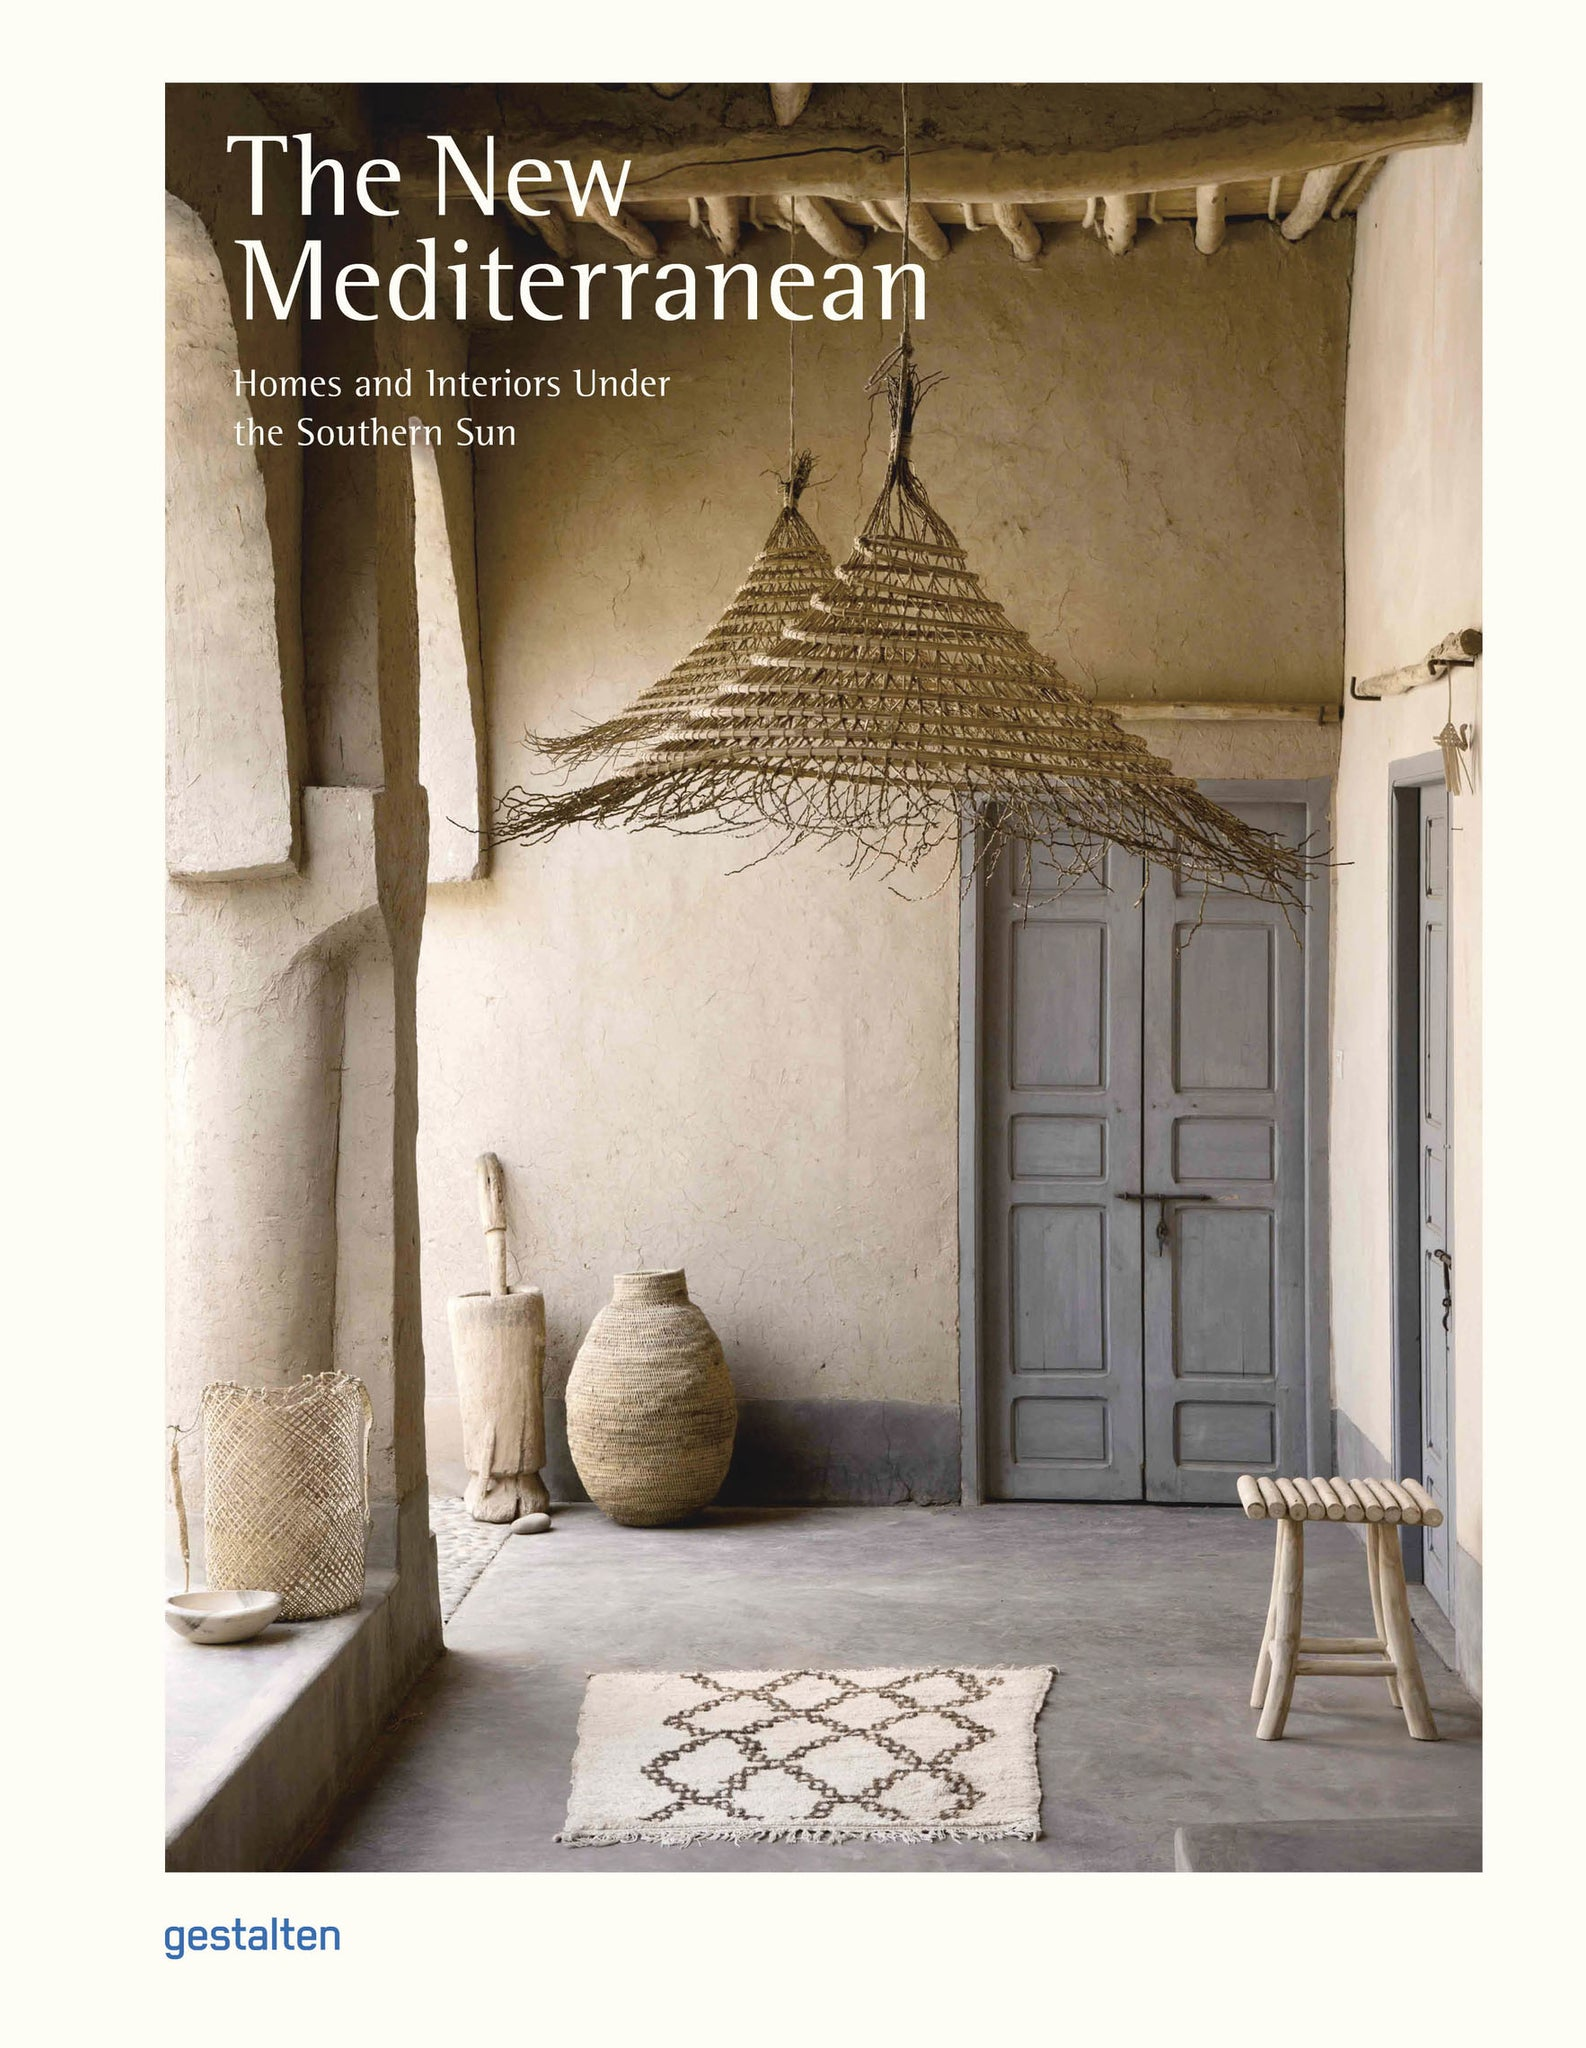 New Mediterranean: Homes and Interiors Under the Southern Sun